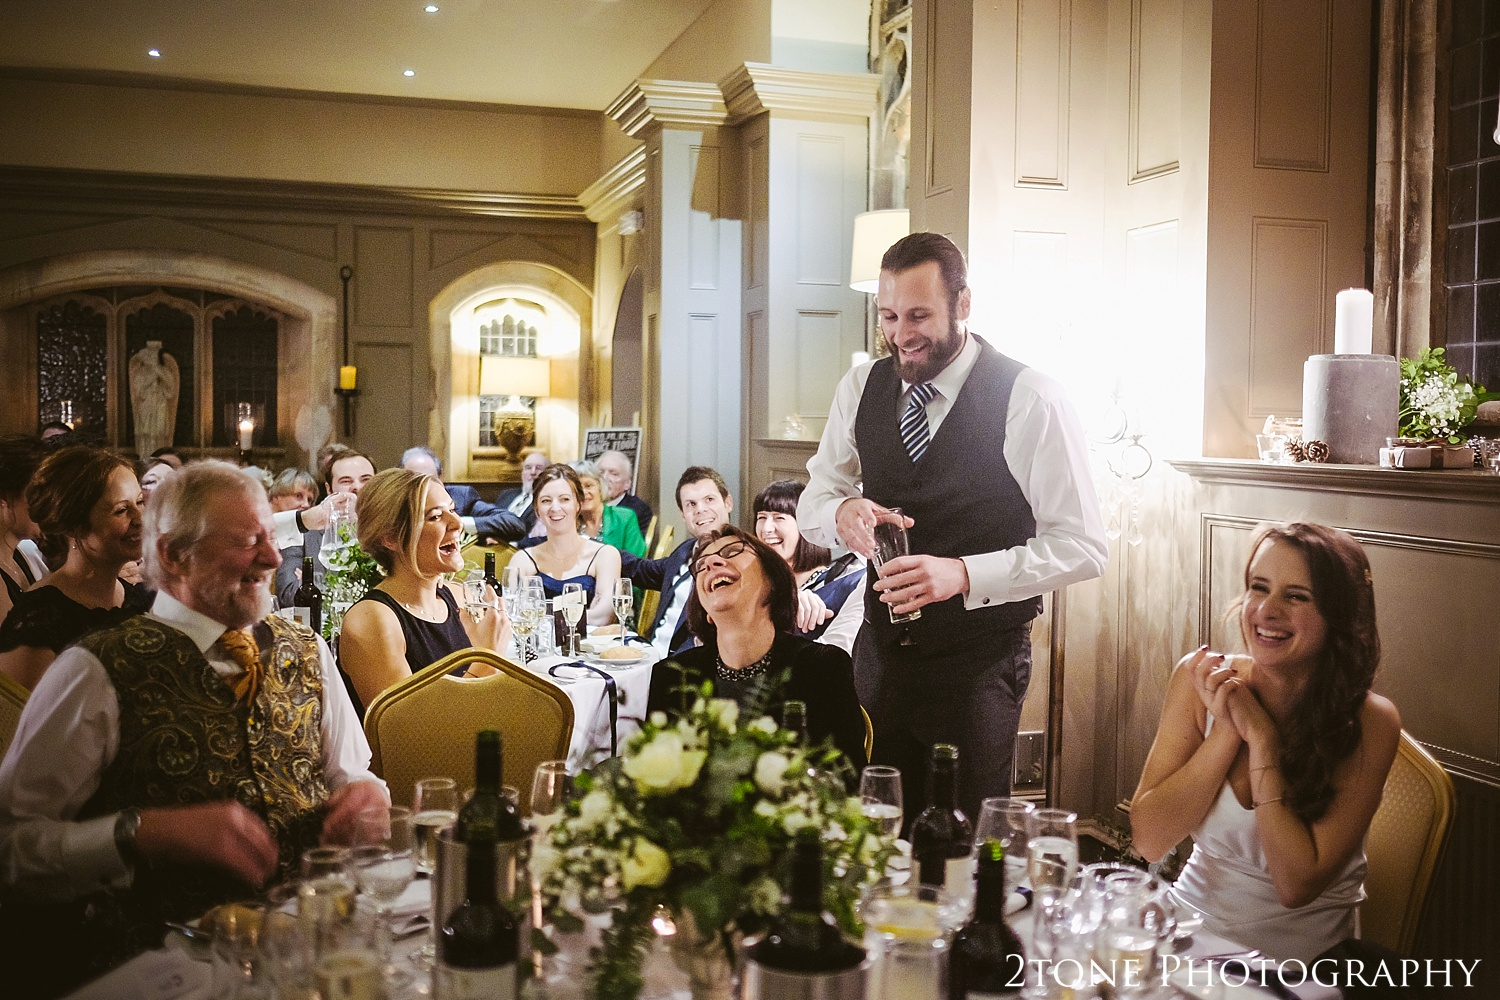 Wedding speeches at Ellingham Hall. Winter wedding photography by www.2tonephotography.co.uk